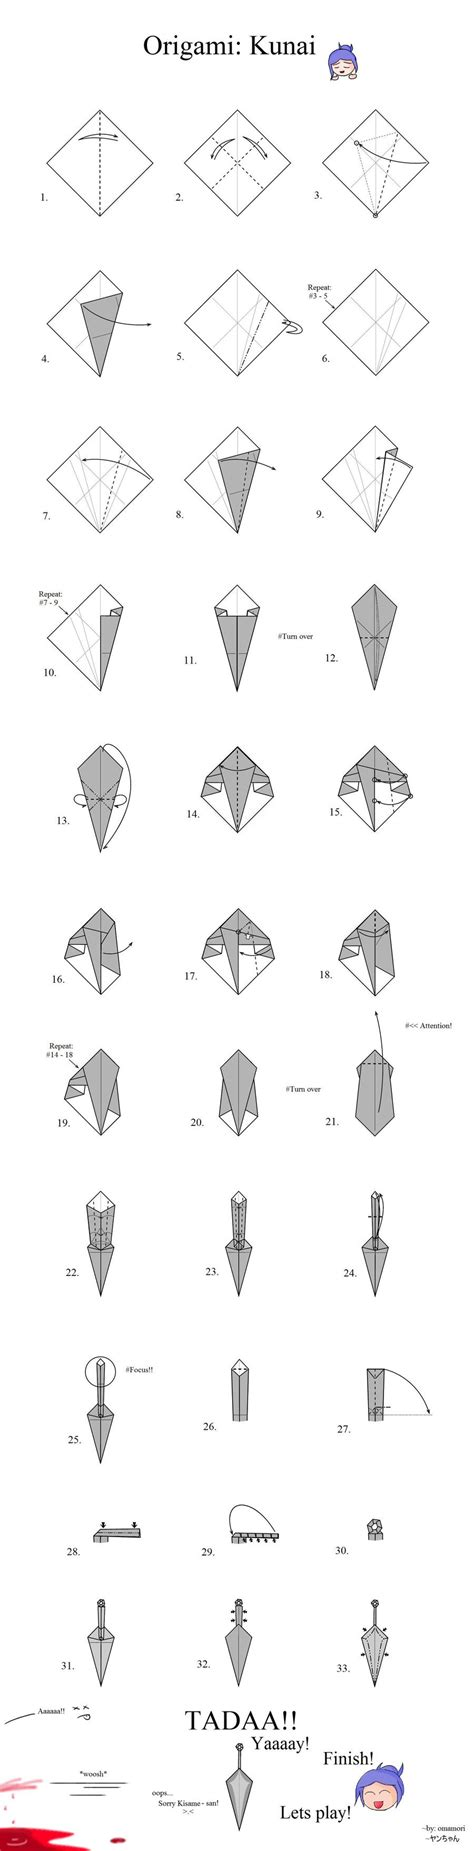 How To Make A Origami Sword Step By Step - tutorial origami kunai by mahou no omamori on deviantart